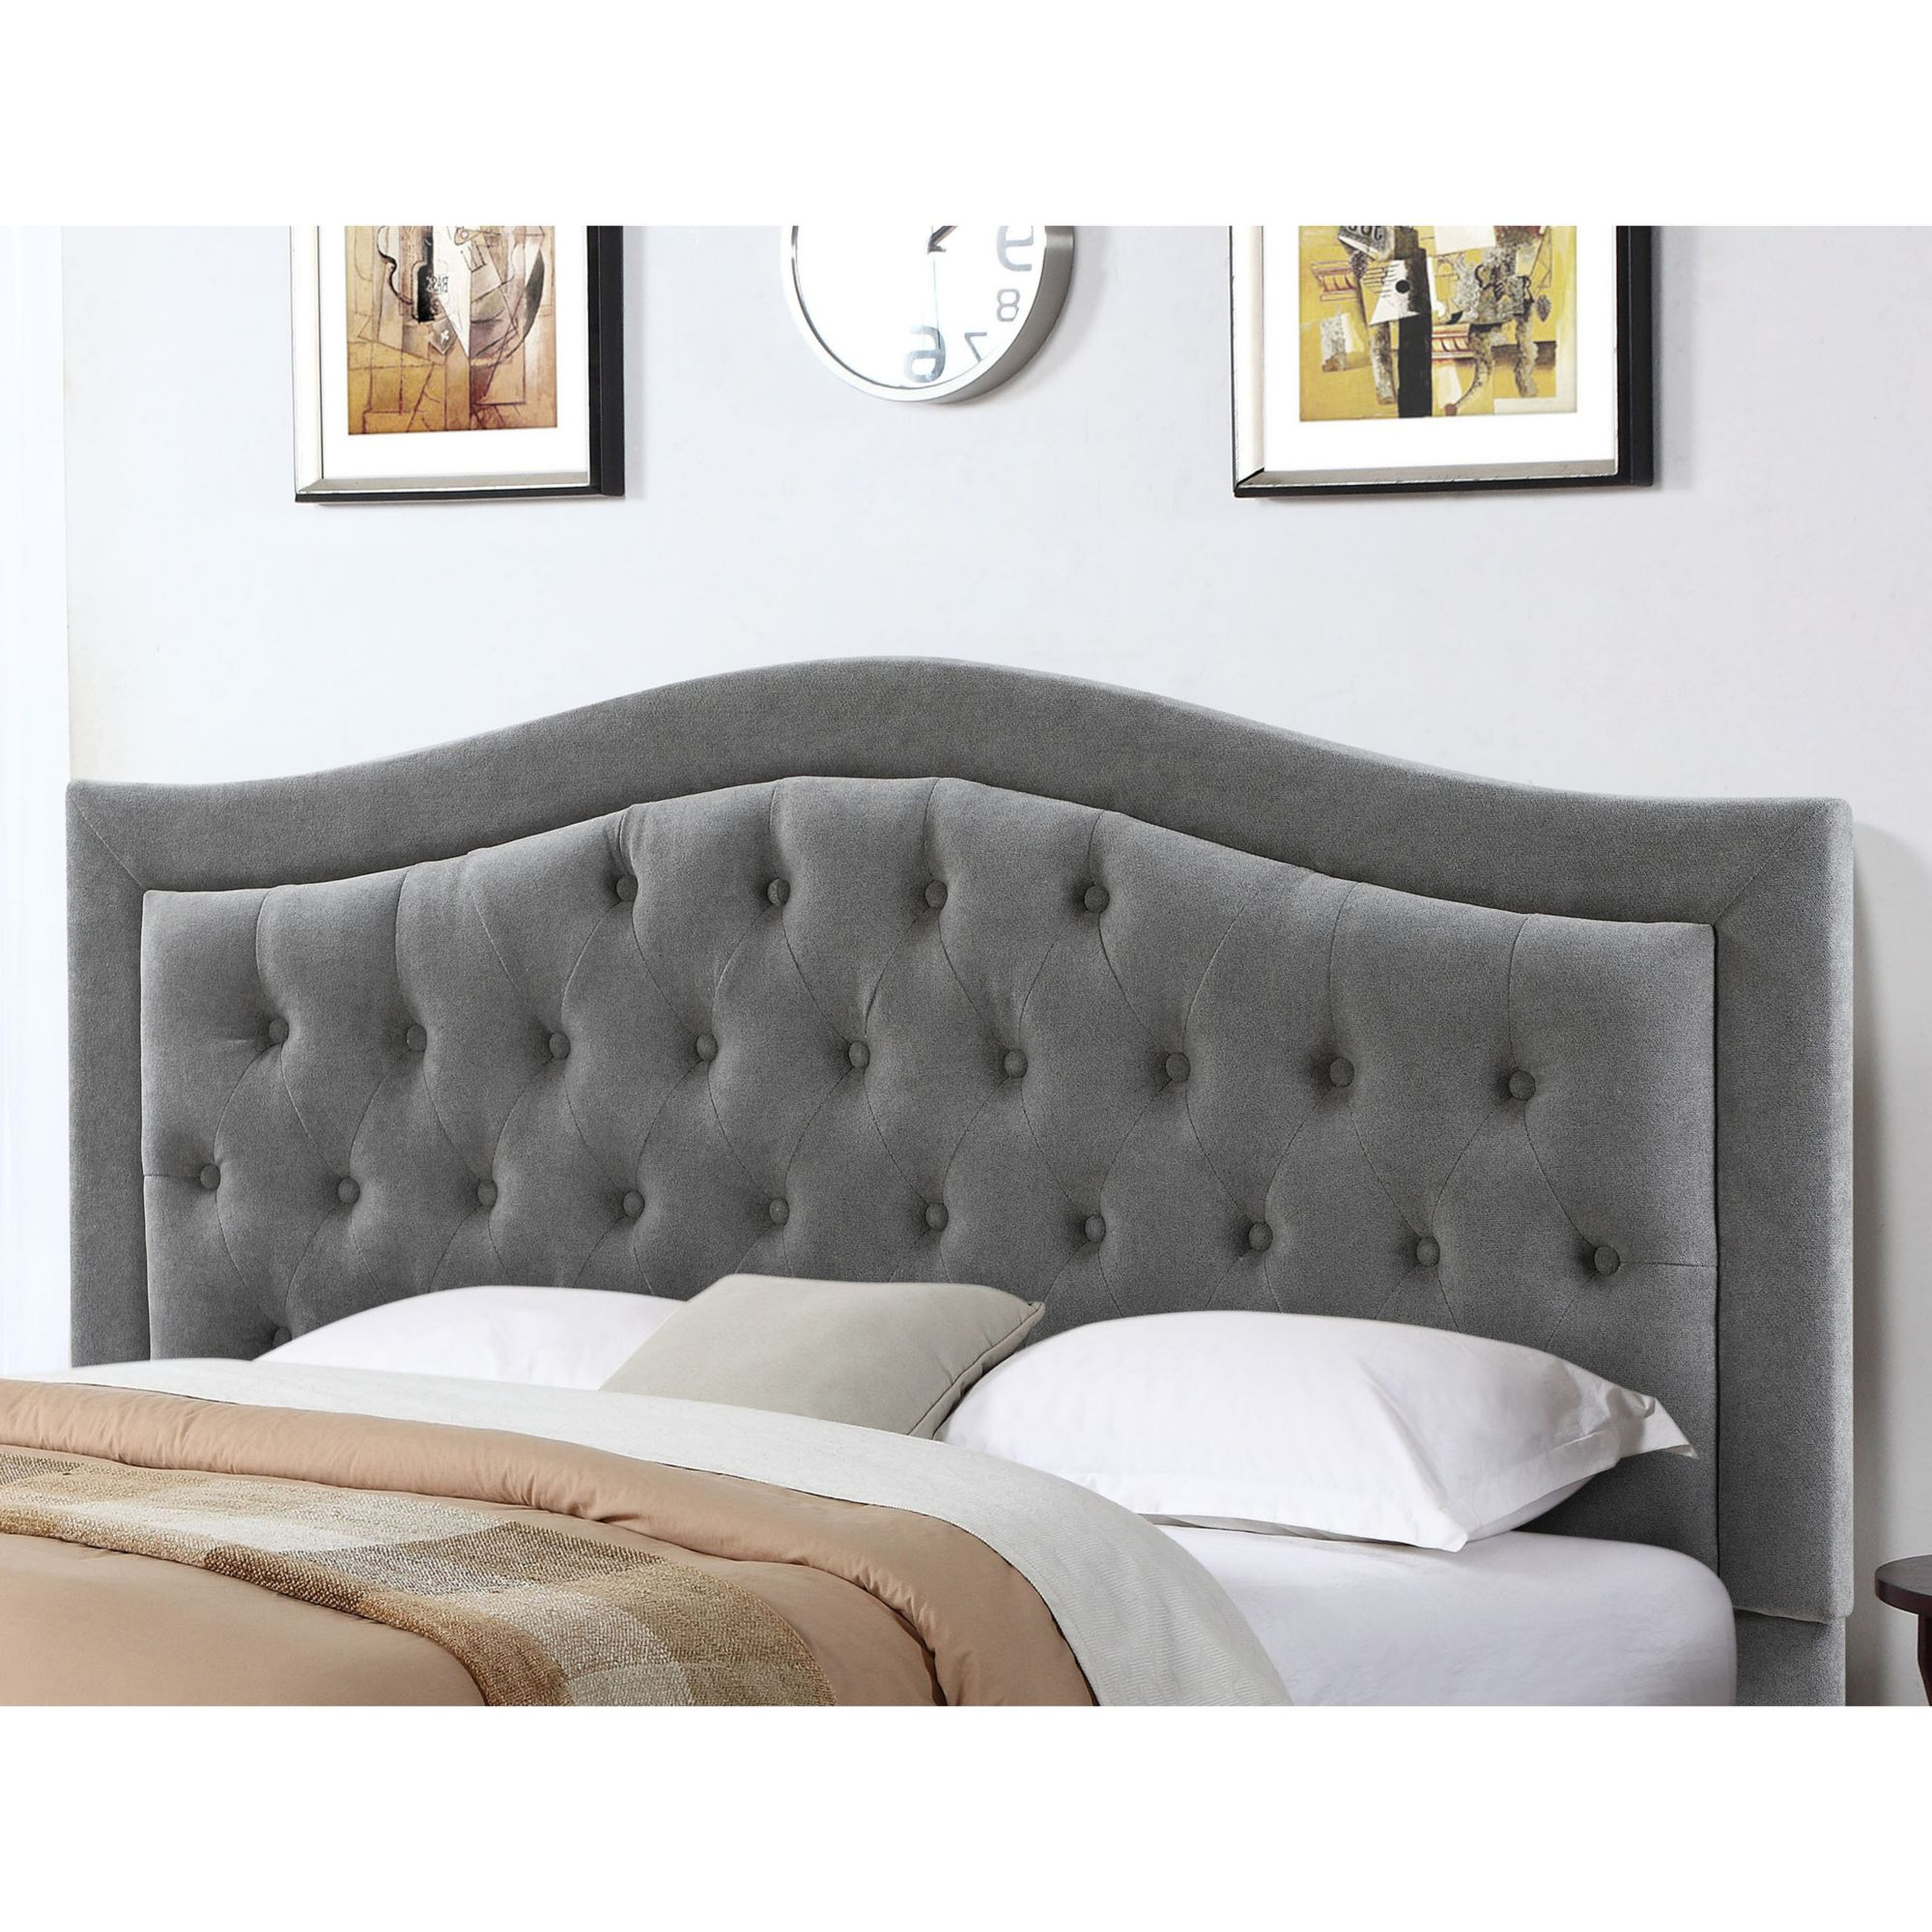 Shop Now For The Abbyson Living Jamie Tufted Full Queen Size Headboard Gray Accuweather Shop